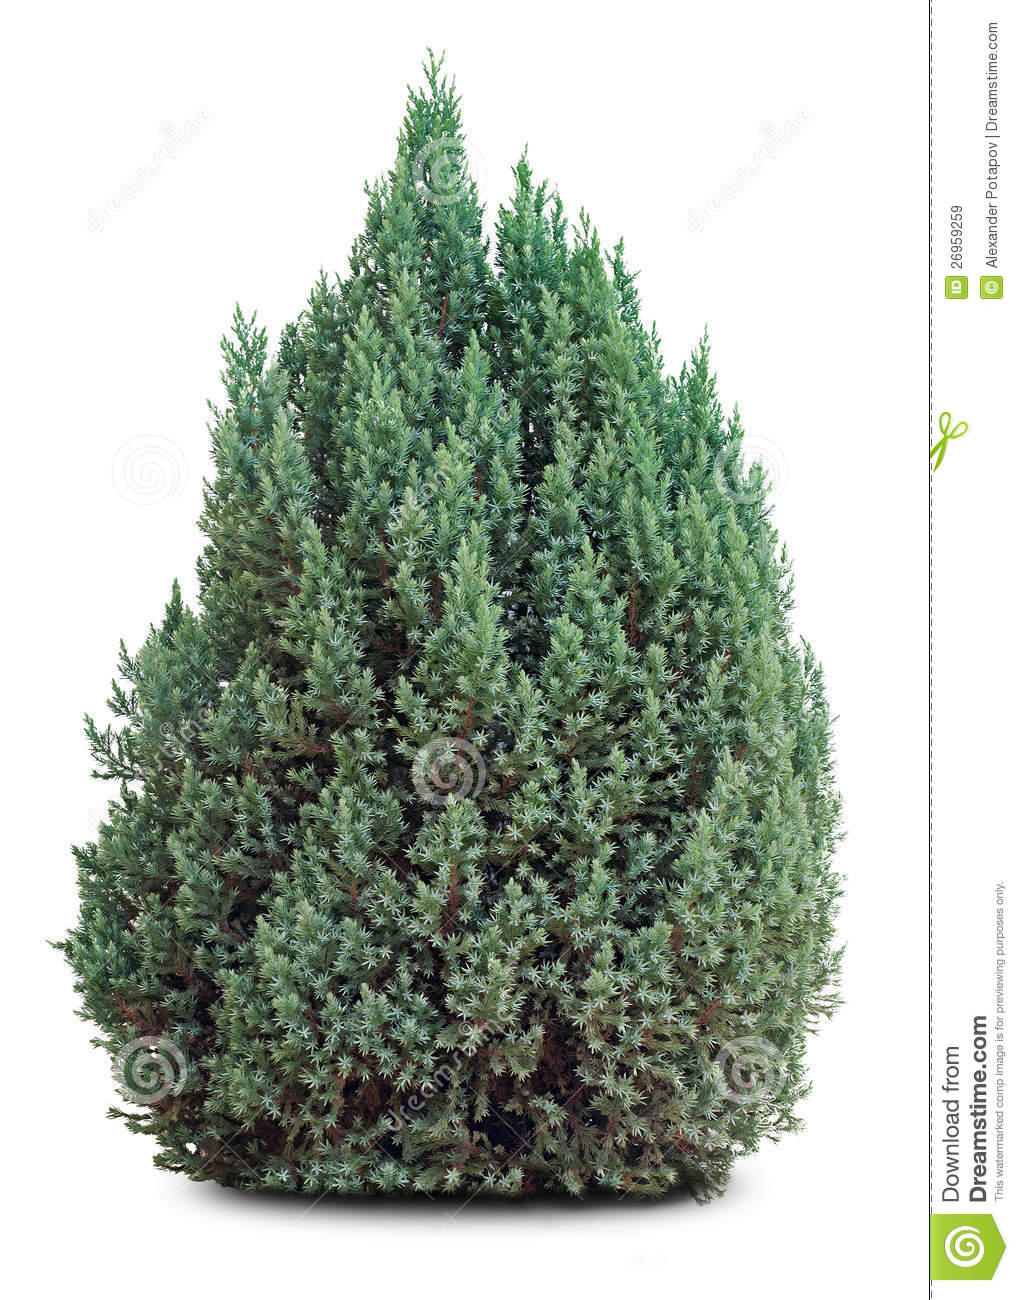 Small evergreen tree on white stock image image 26959259 for Short evergreen trees